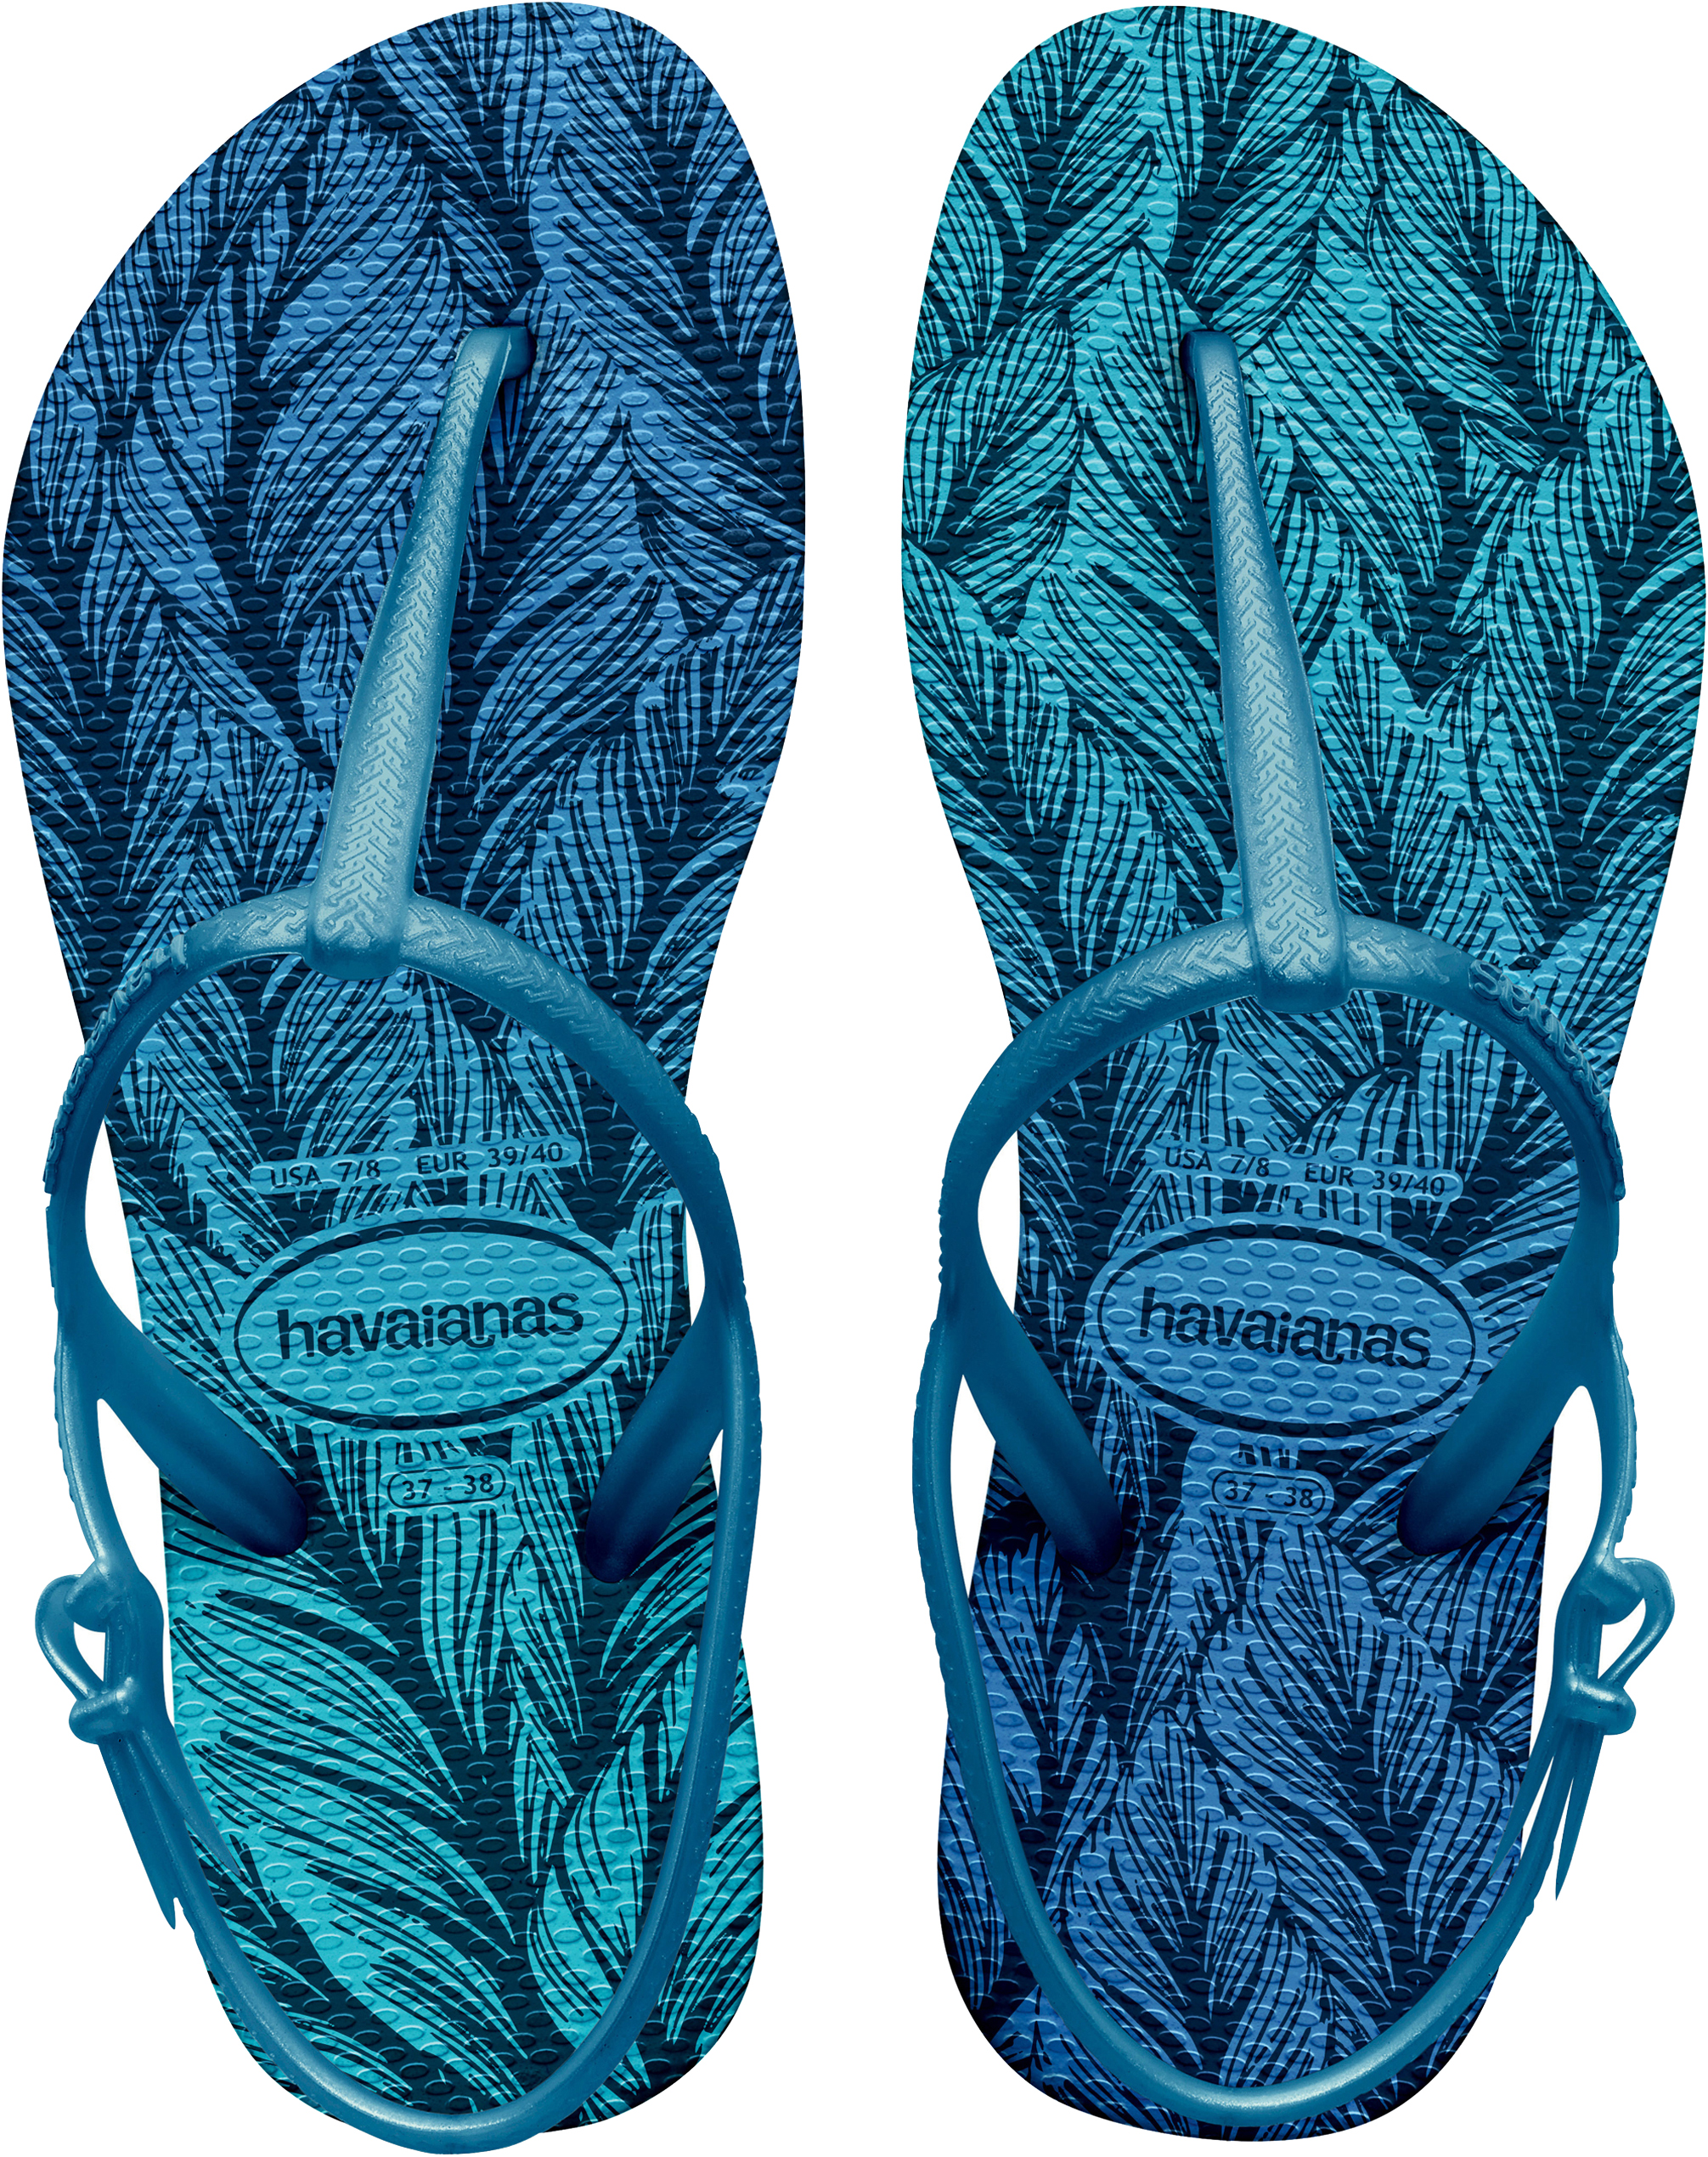 0b575a71cf7e5a Havaianas Women s Freedom Print Sandals With Heel Strap Uk5 Lavender Blue.  About this product. Picture 1 of 5  Picture 2 of 5 ...